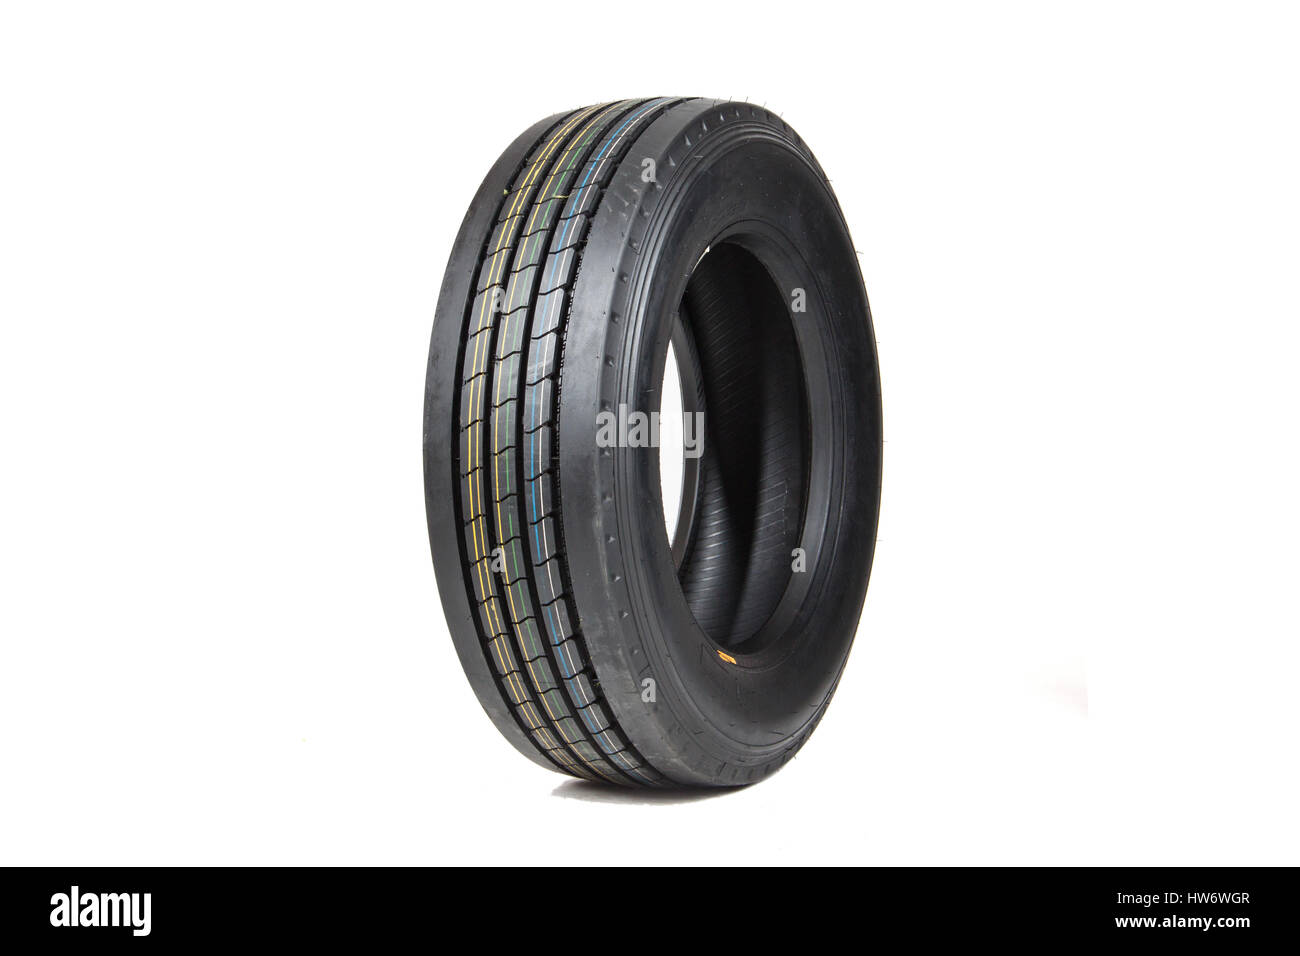 Car tire isolated on white background. - Stock Image